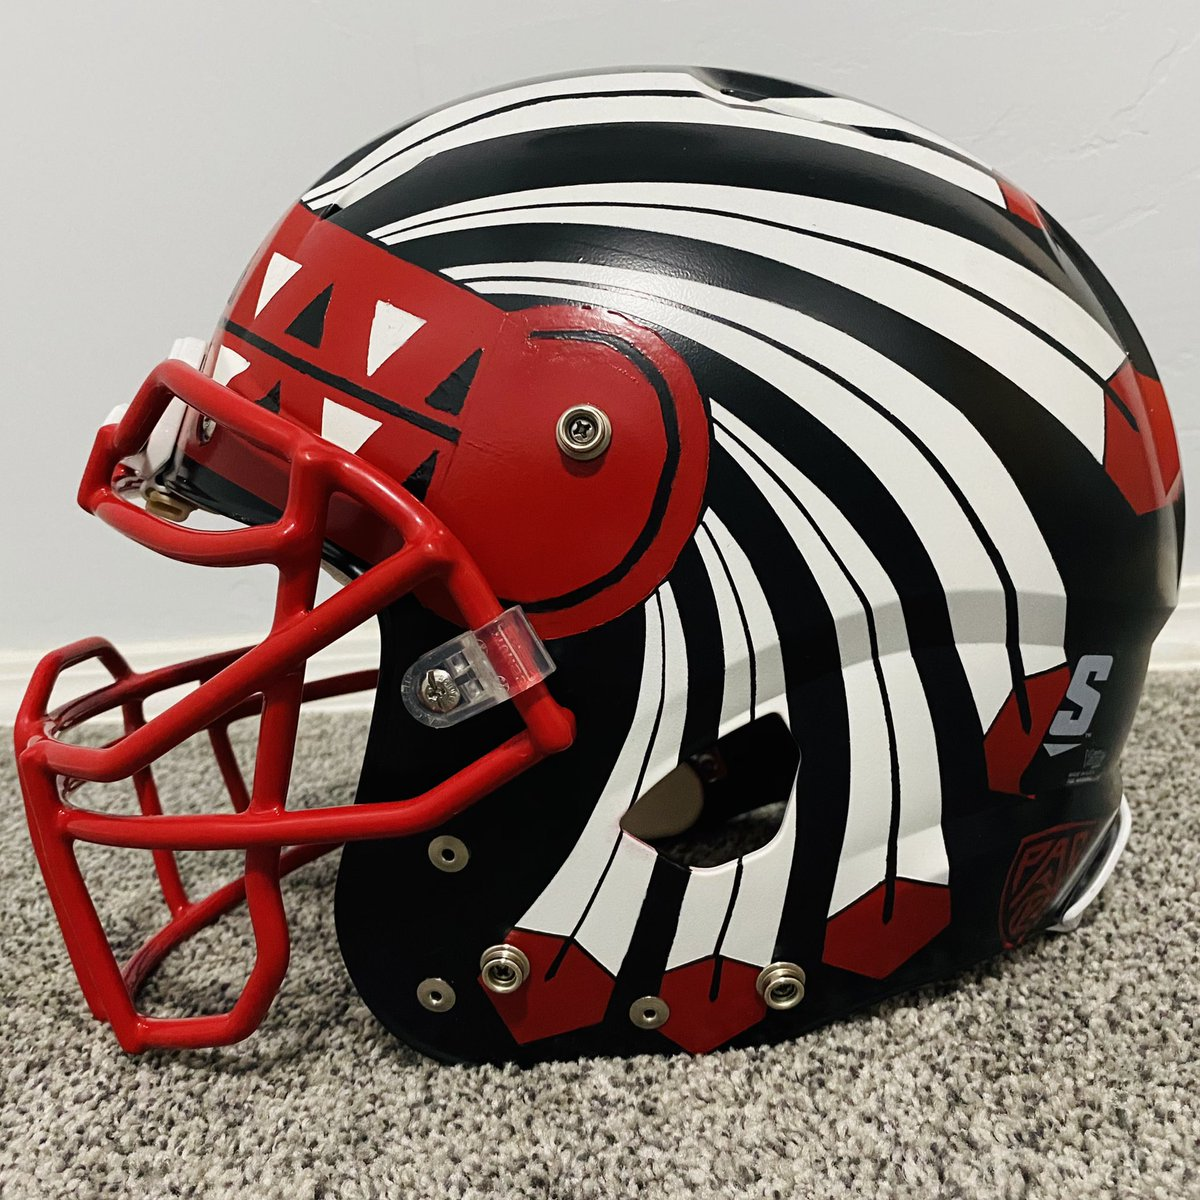 My custom hand-painted Utes helmet... Obviously the inspiration for it came from @dahlelama. Had a black helmet lying around and went for it #GoUtes #UteProud